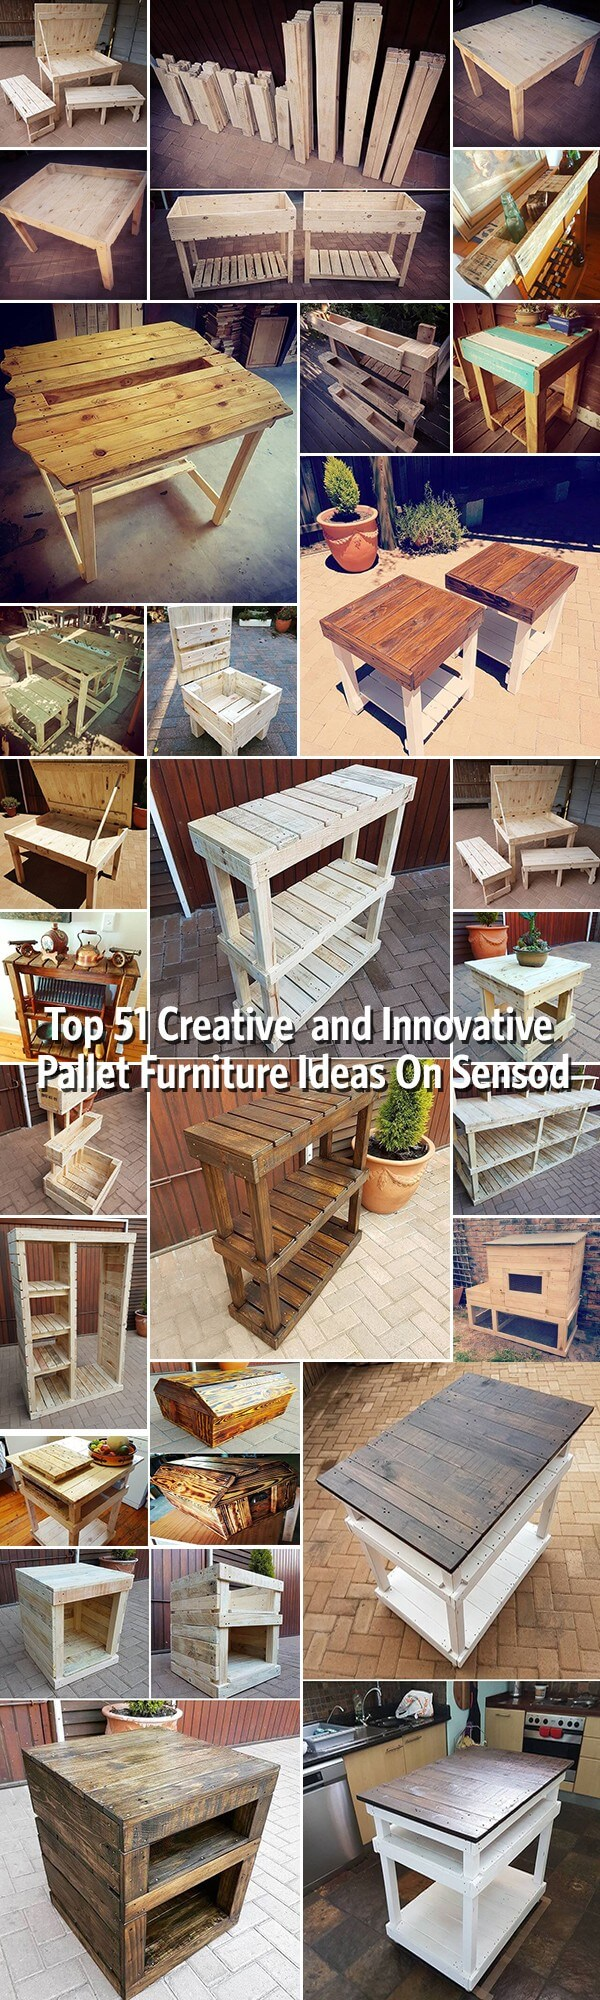 Top 51 Creative and Innovative Pallet Furniture Ideas On Sensod